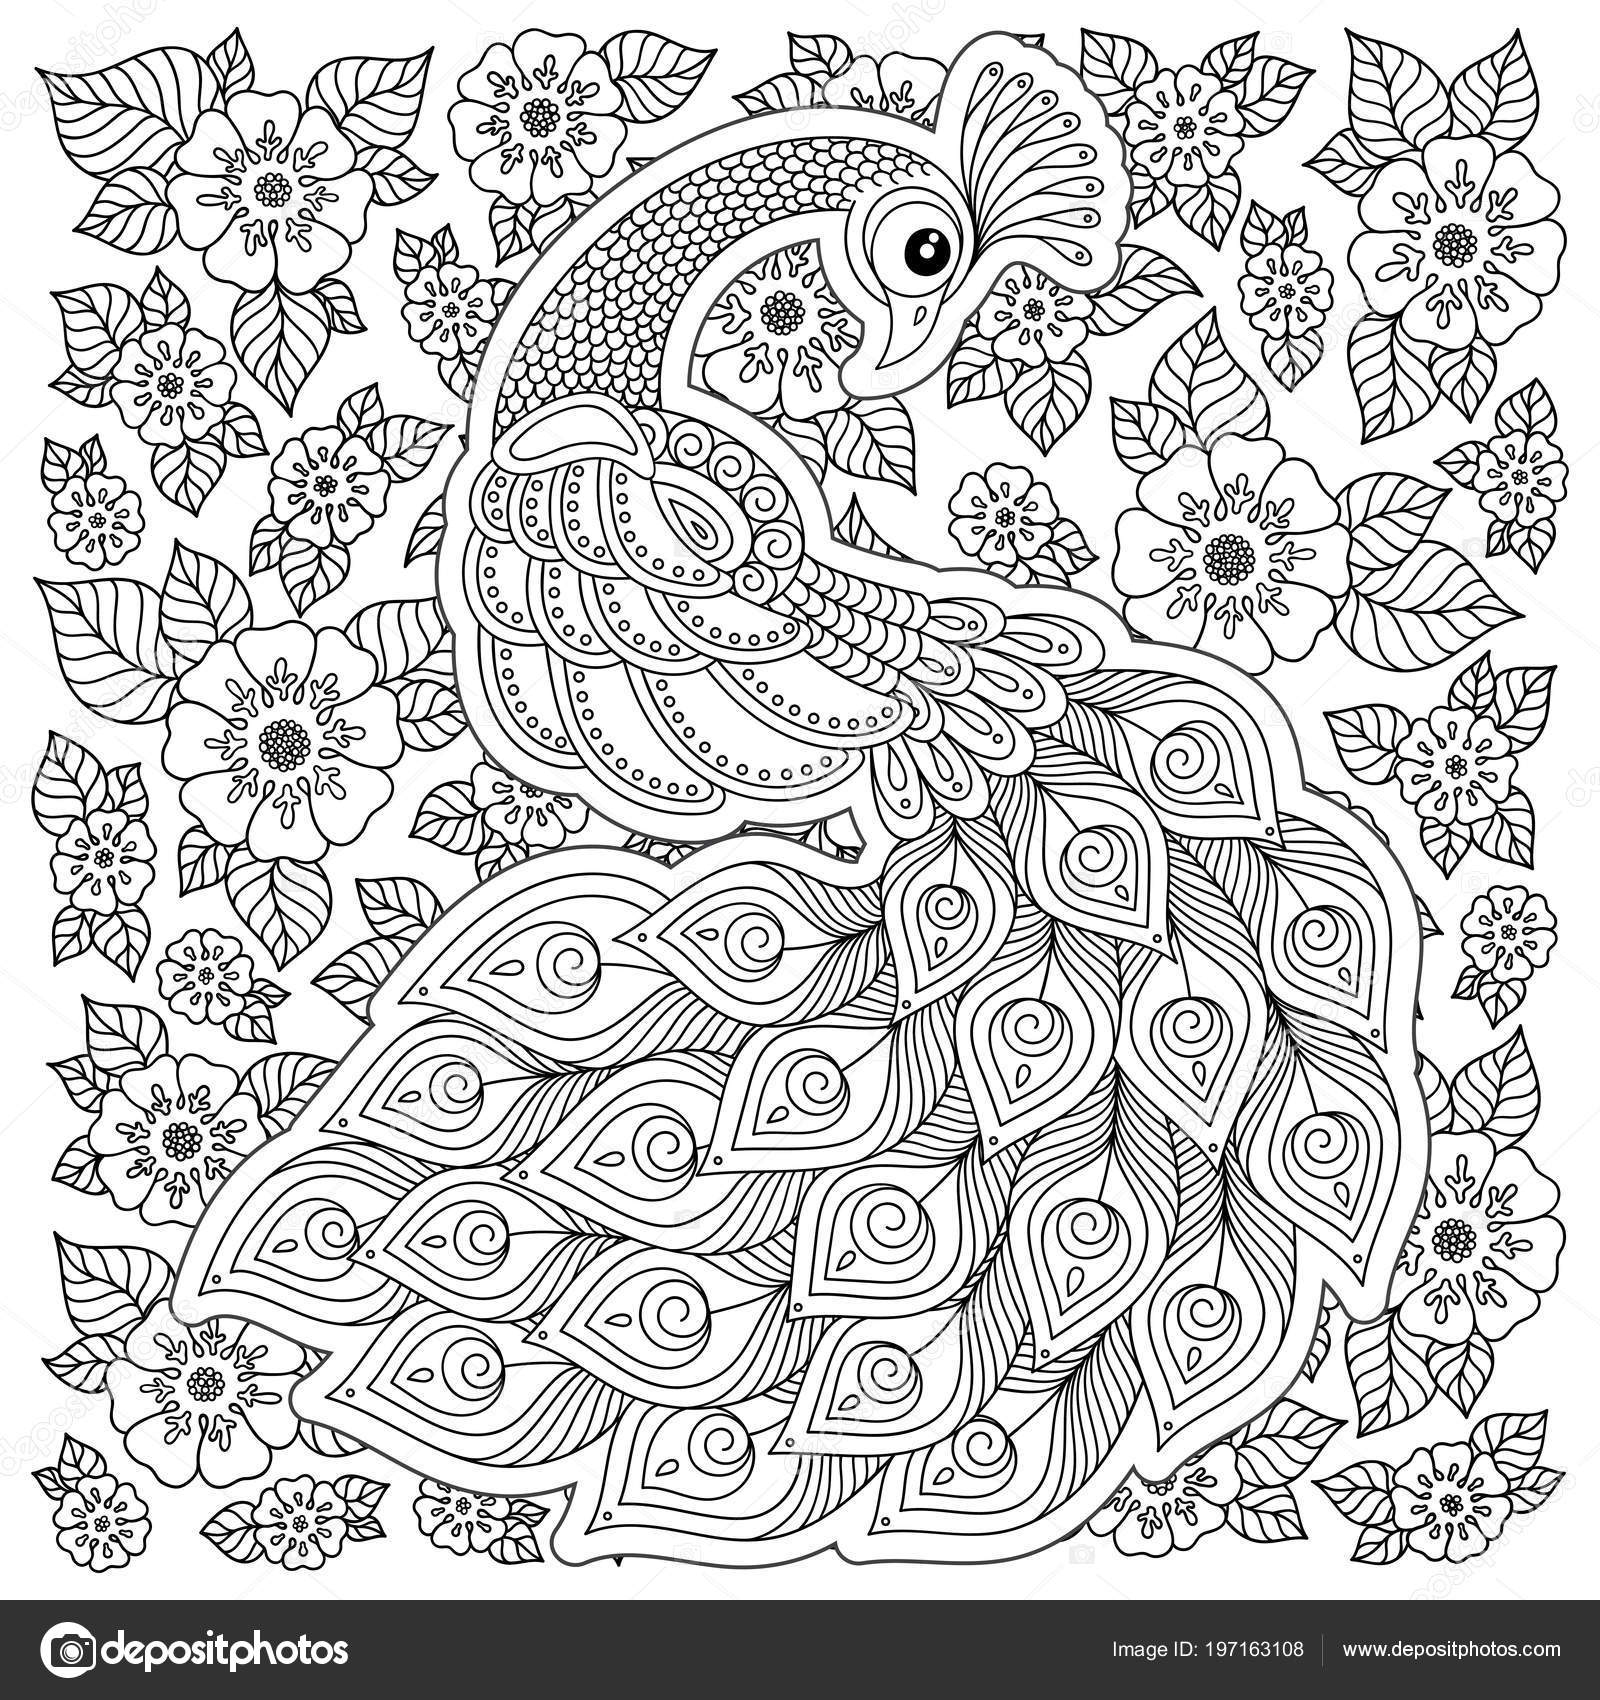 Peacock Adult Antistress Coloring Page Black White Hand Drawn